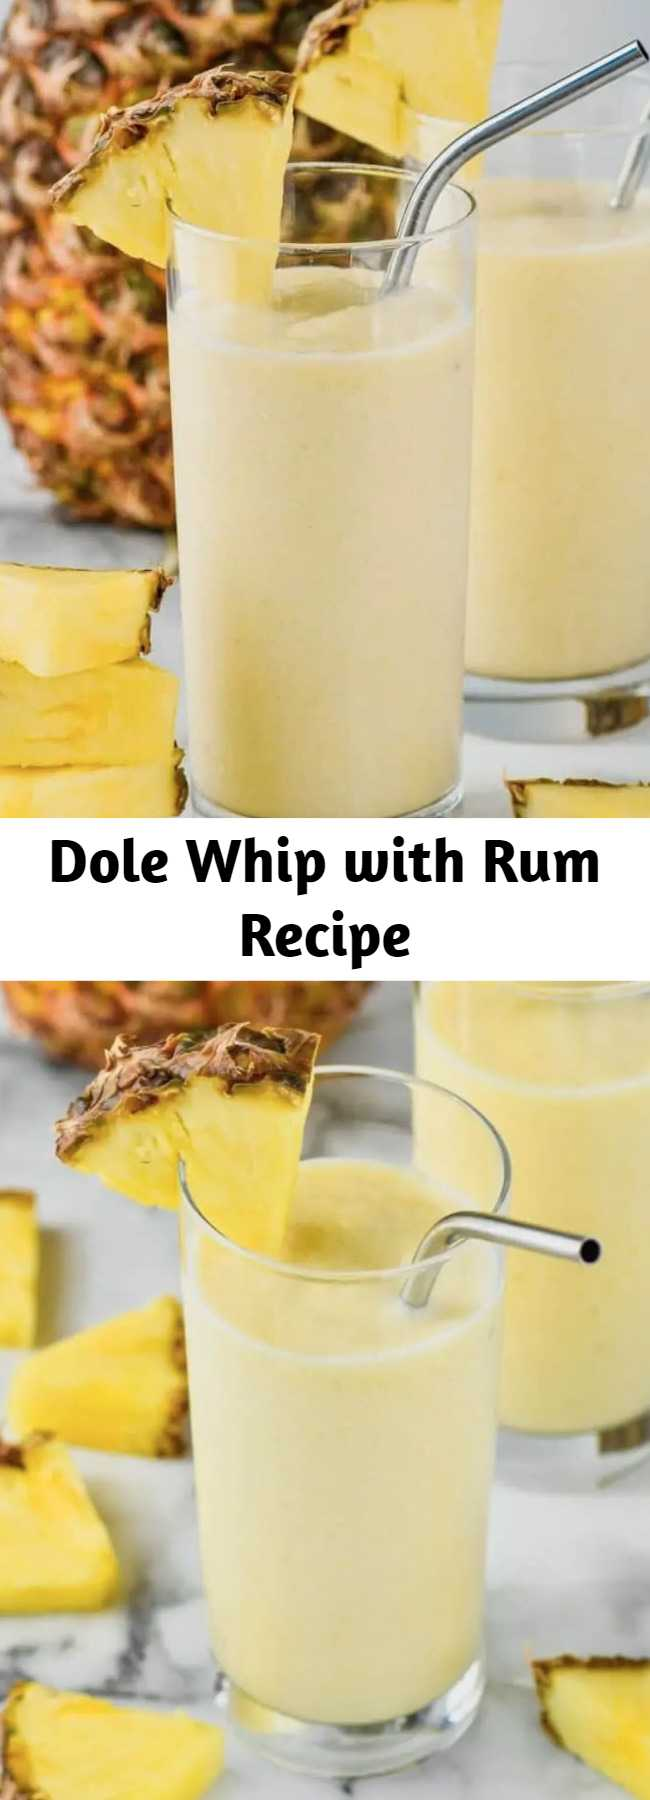 Dole Whip with Rum Recipe - This Disneyland Dole Whip recipe with Rum is the perfect frozen cocktail! Made with only four ingredients, get your sunny vacation fix at home!